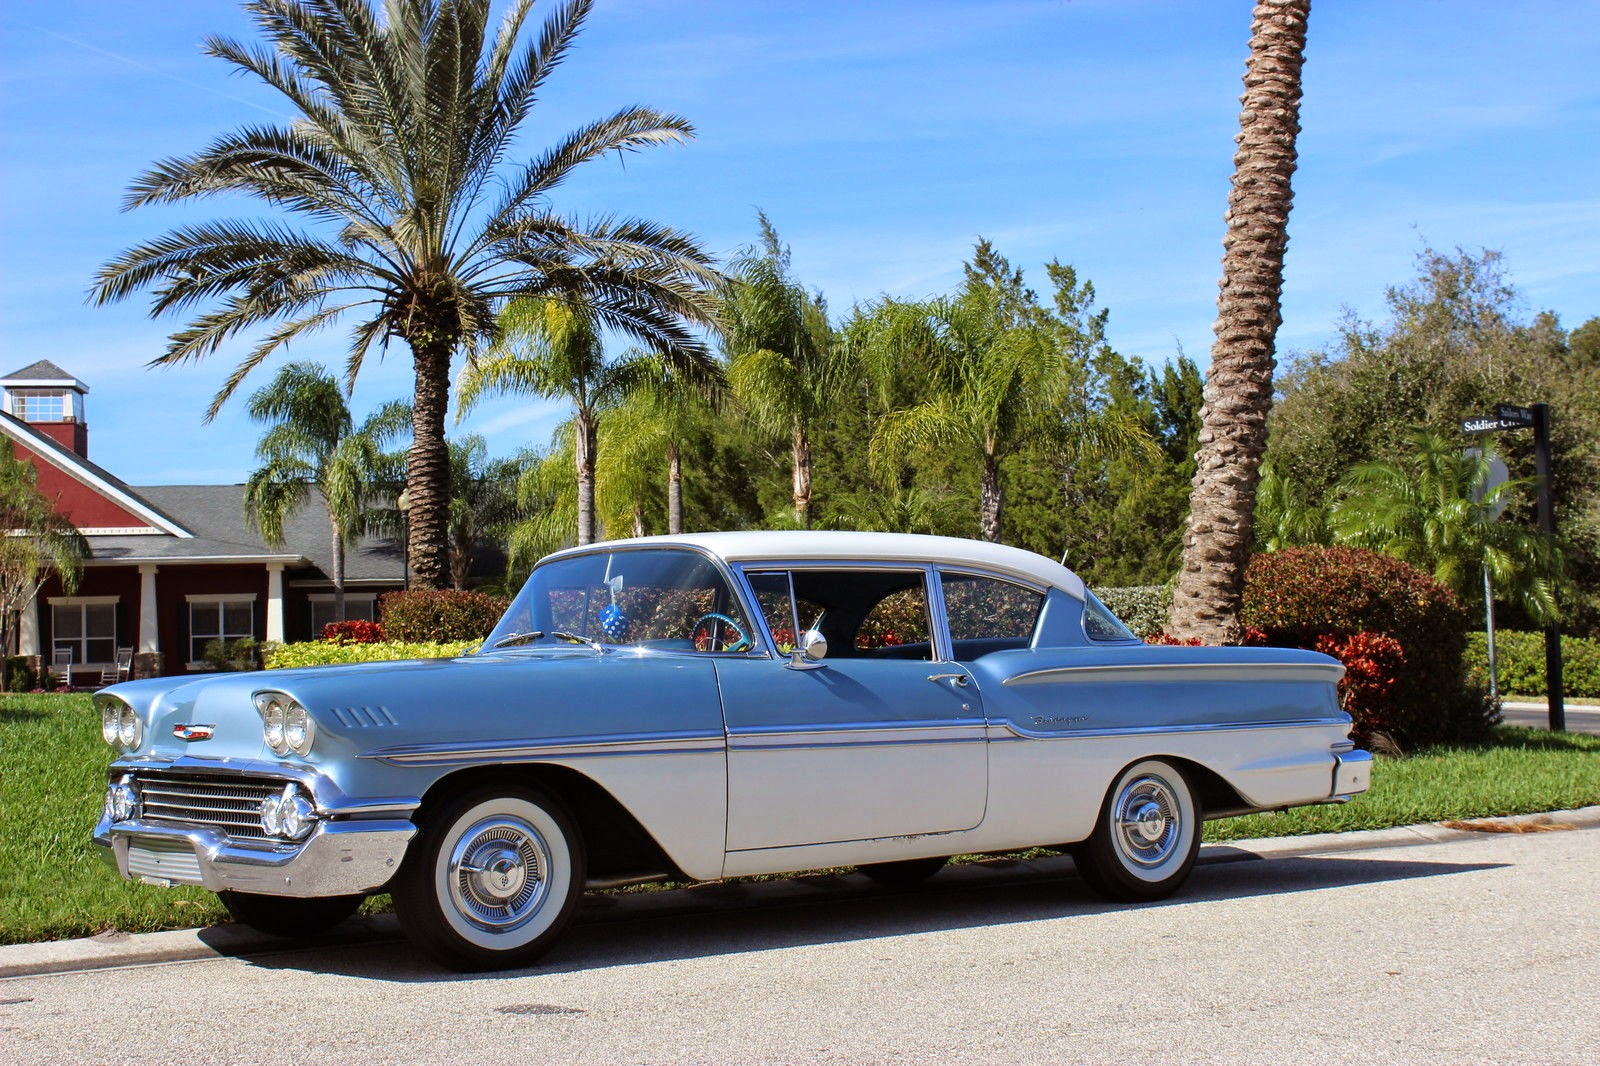 All American Classic Cars: 1958 Chevrolet Biscayne 2-Door